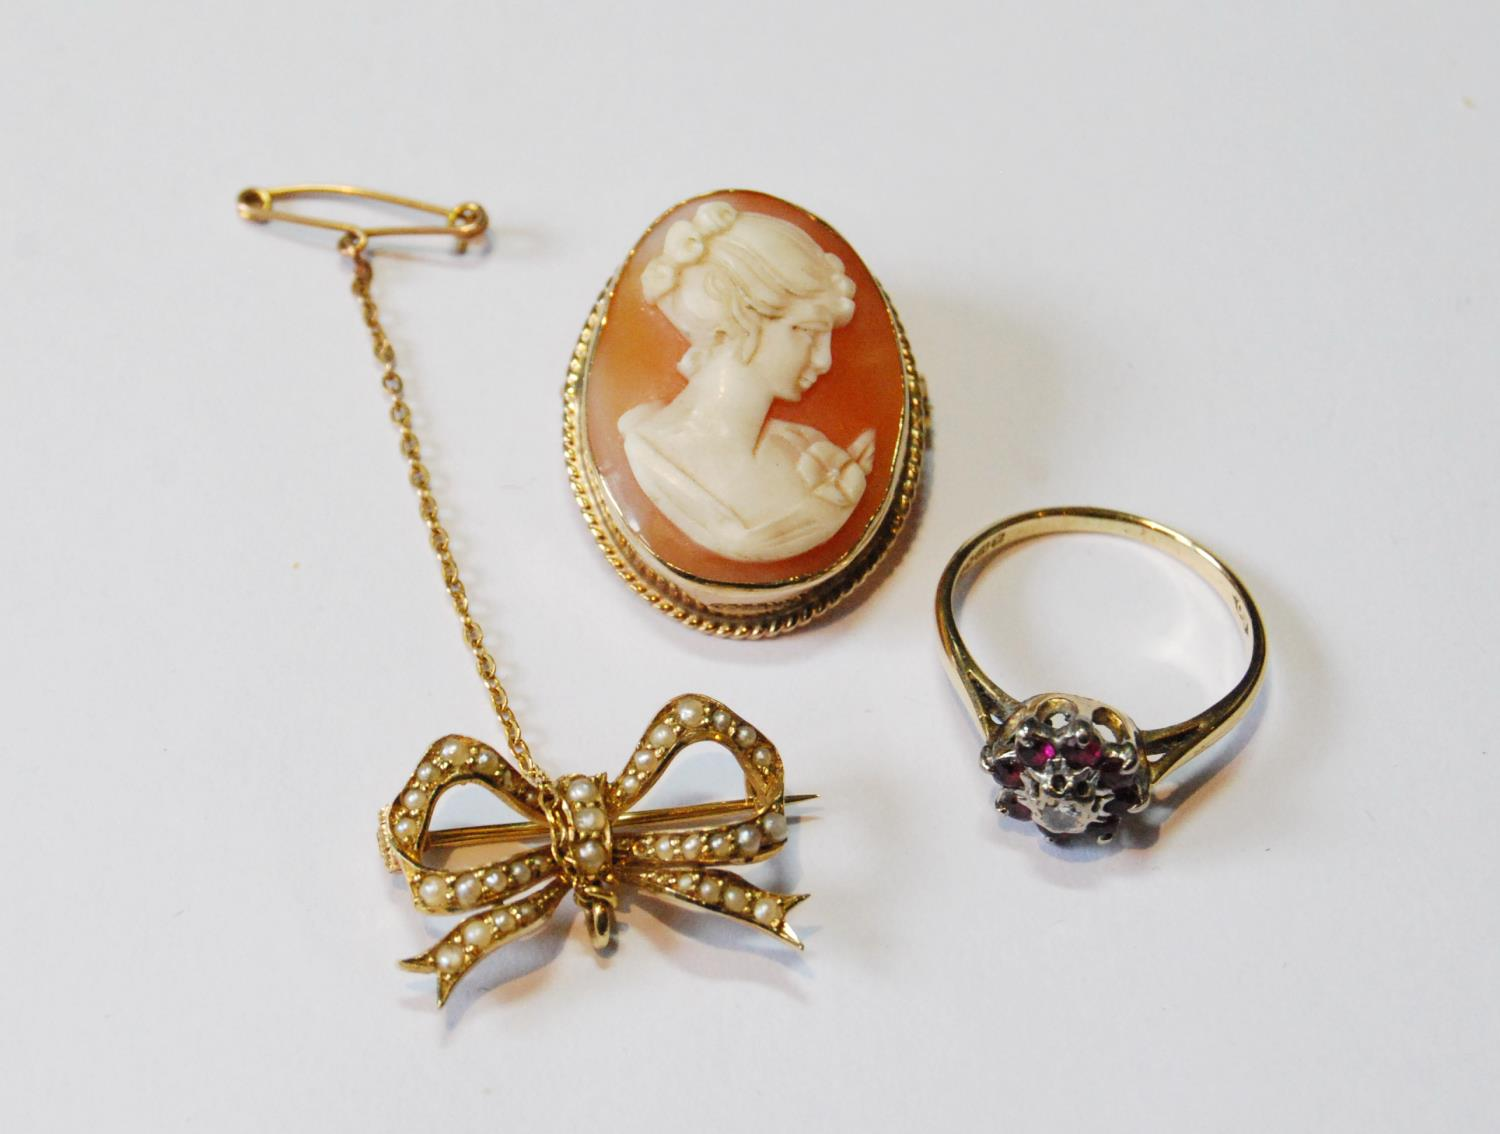 Ruby and diamond ring in 18ct gold, a cameo brooch and a pearl bow brooch.